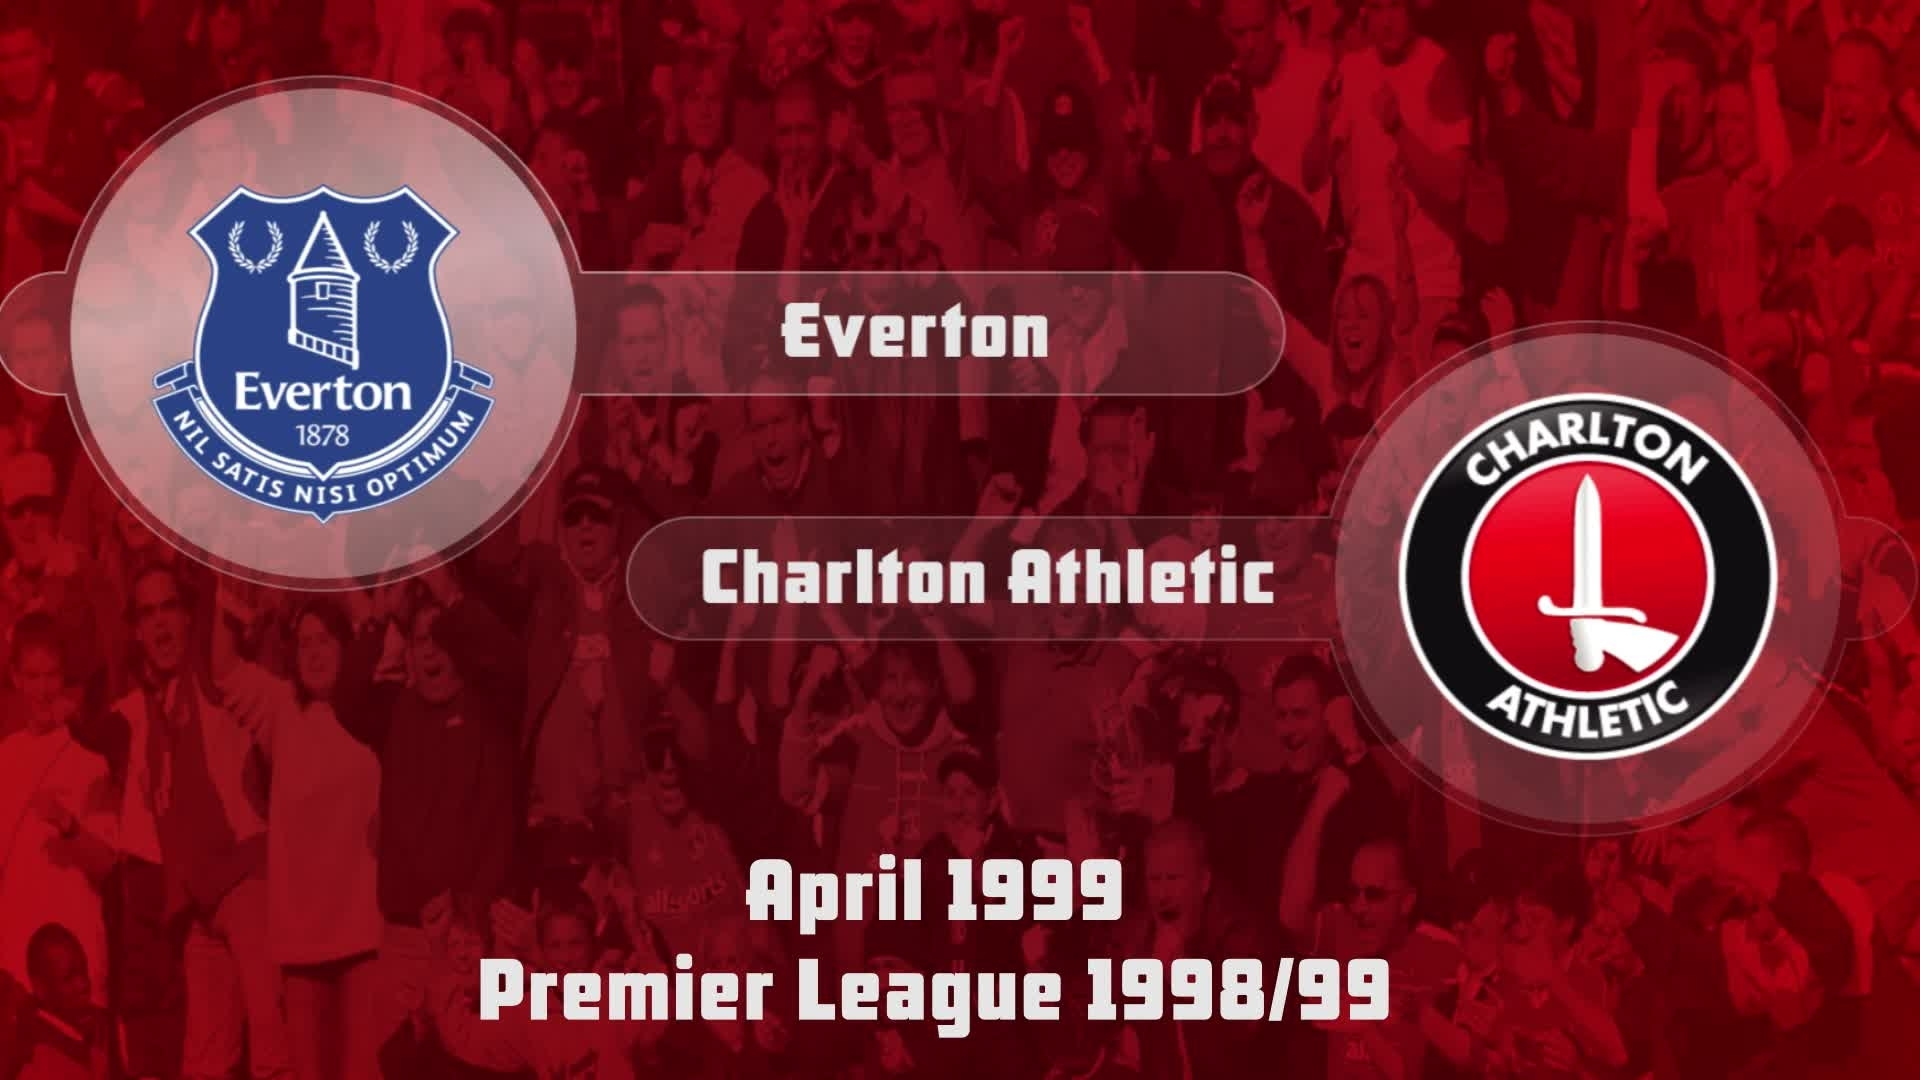 39 HIGHLIGHTS | Everton 4 Charlton 1 (April 1999)